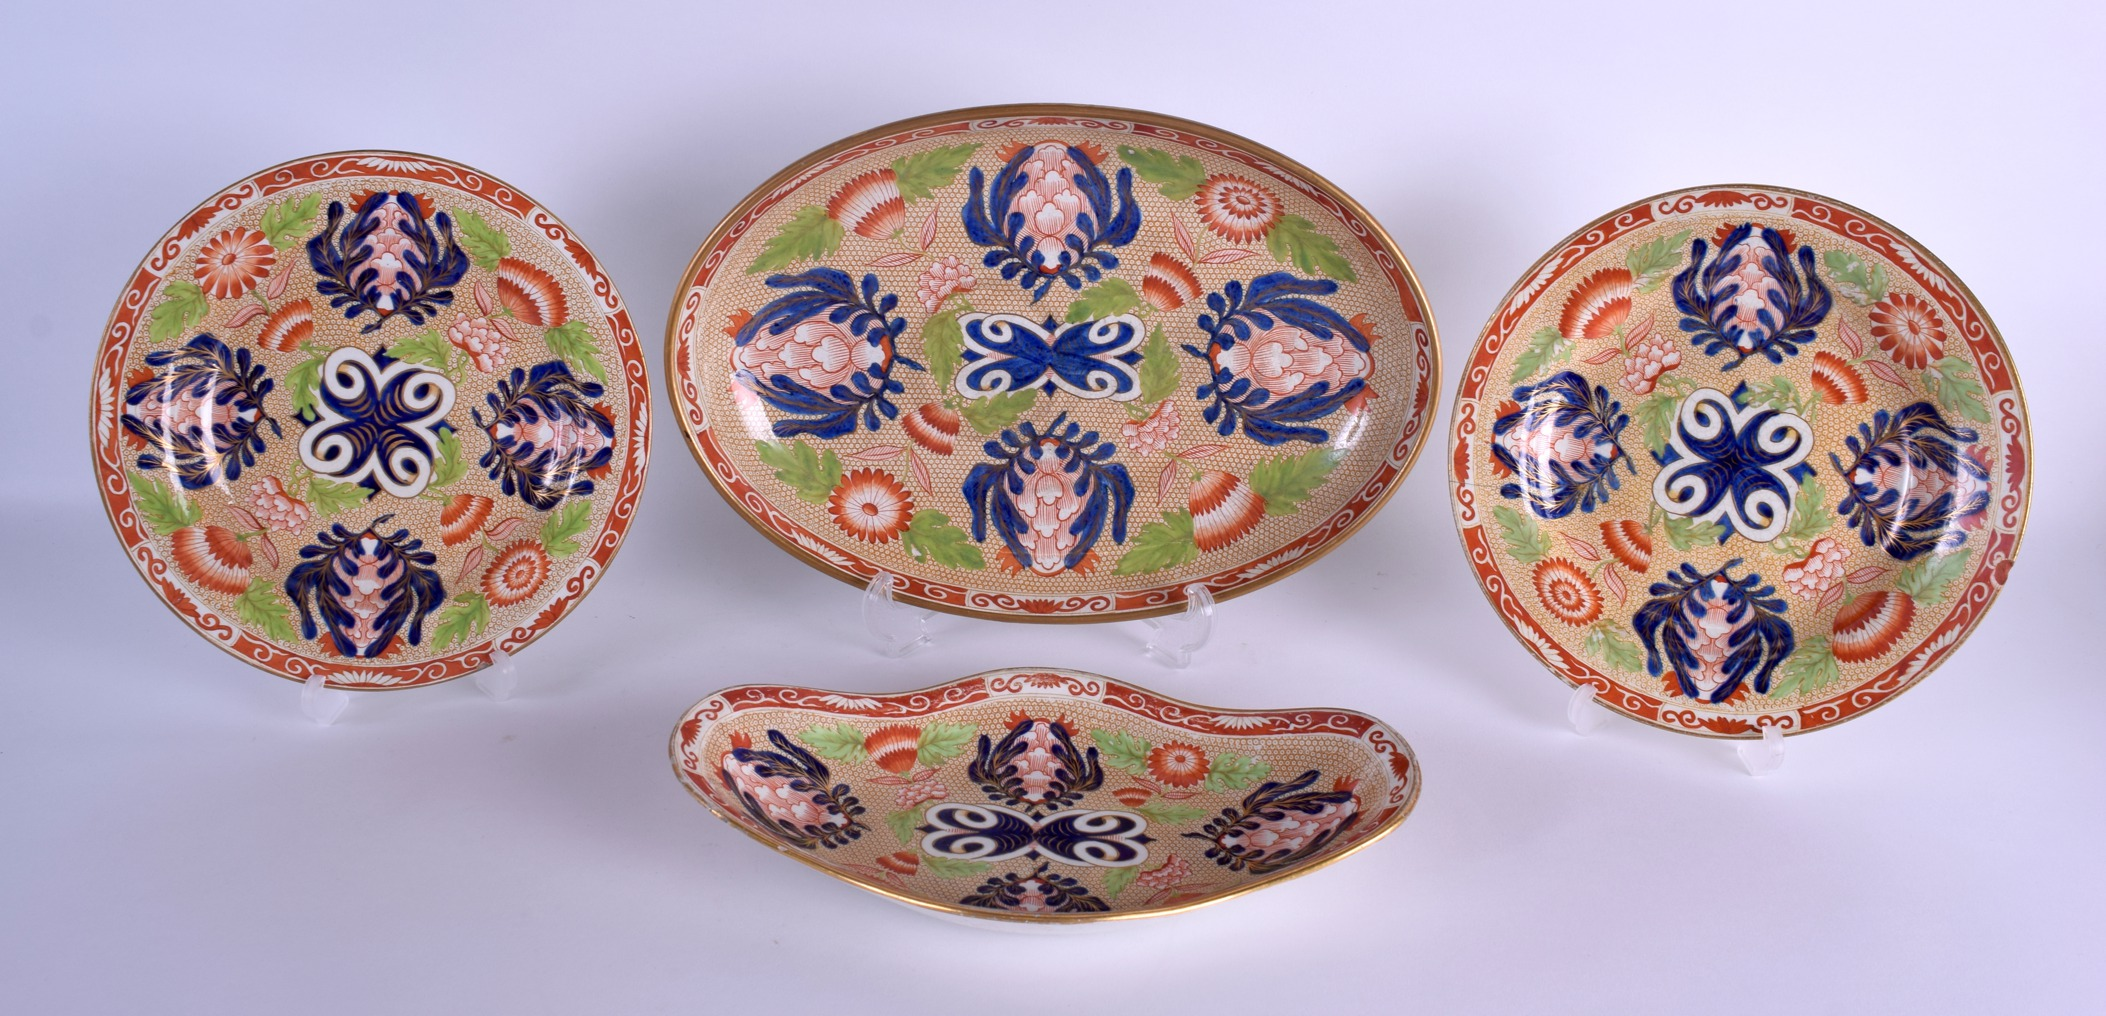 Lot 57 - AN EARLY 19TH CENTURY WEDGWOOD IMARI OVAL DISH together with a pair of plates & a smaller dish.